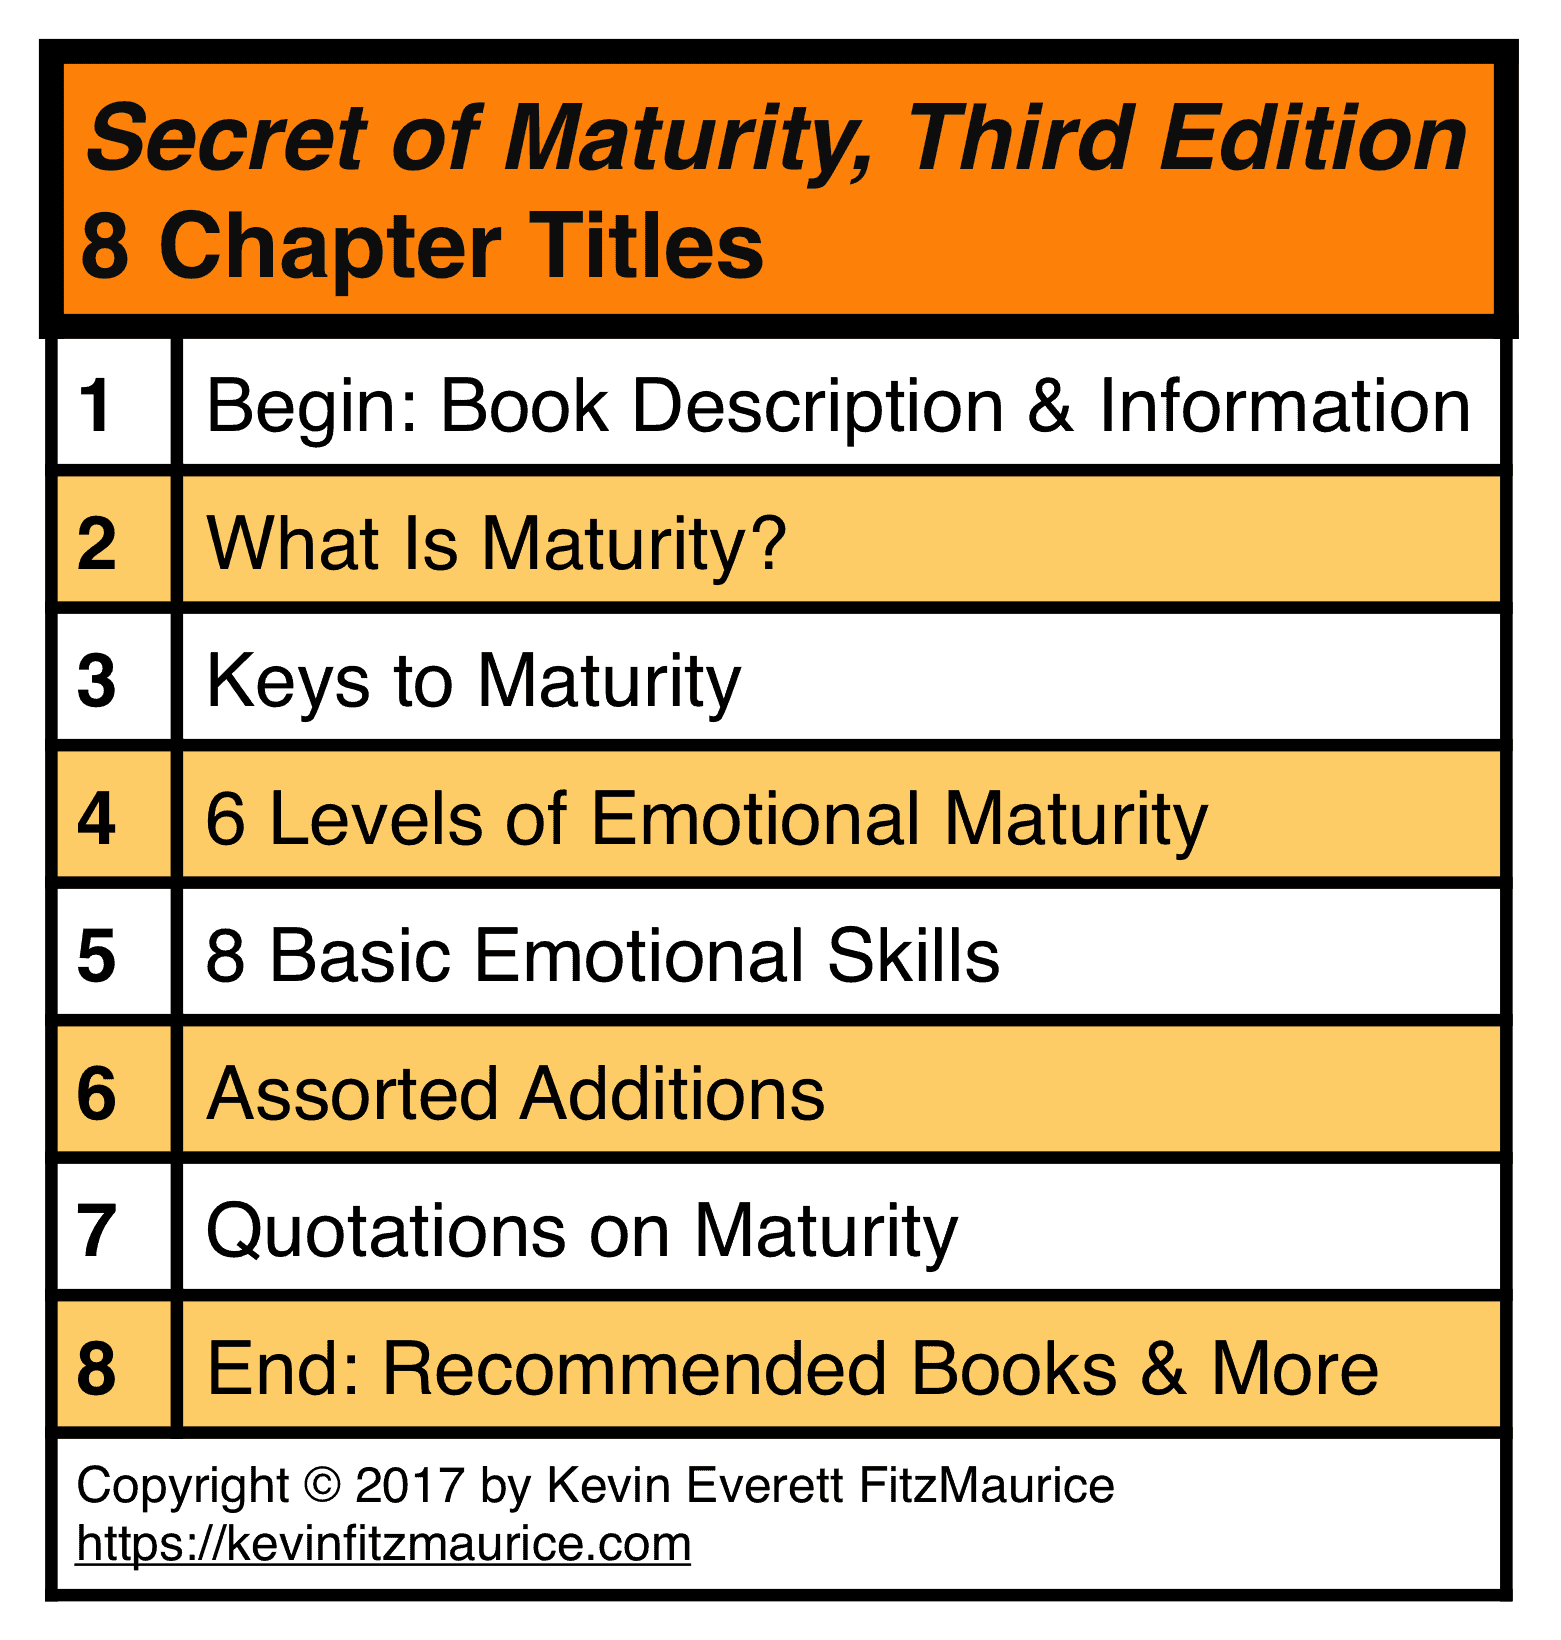 Secret of Maturity 8 Chapters